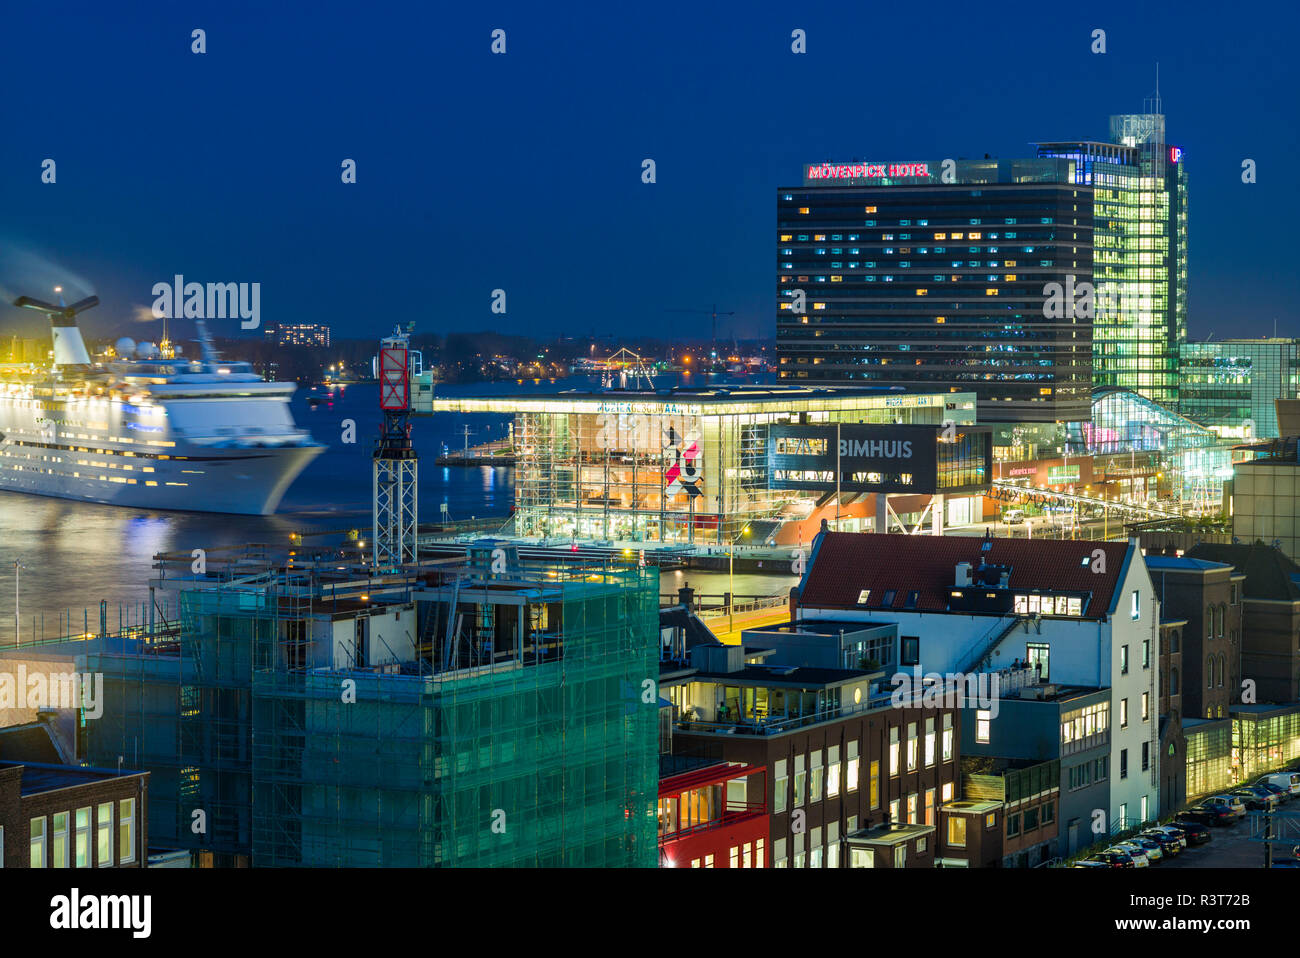 Netherlands, Amsterdam. Eastern Docklands, elevated port view with Muziekgebouw-Bimhuis concert hall - Stock Image